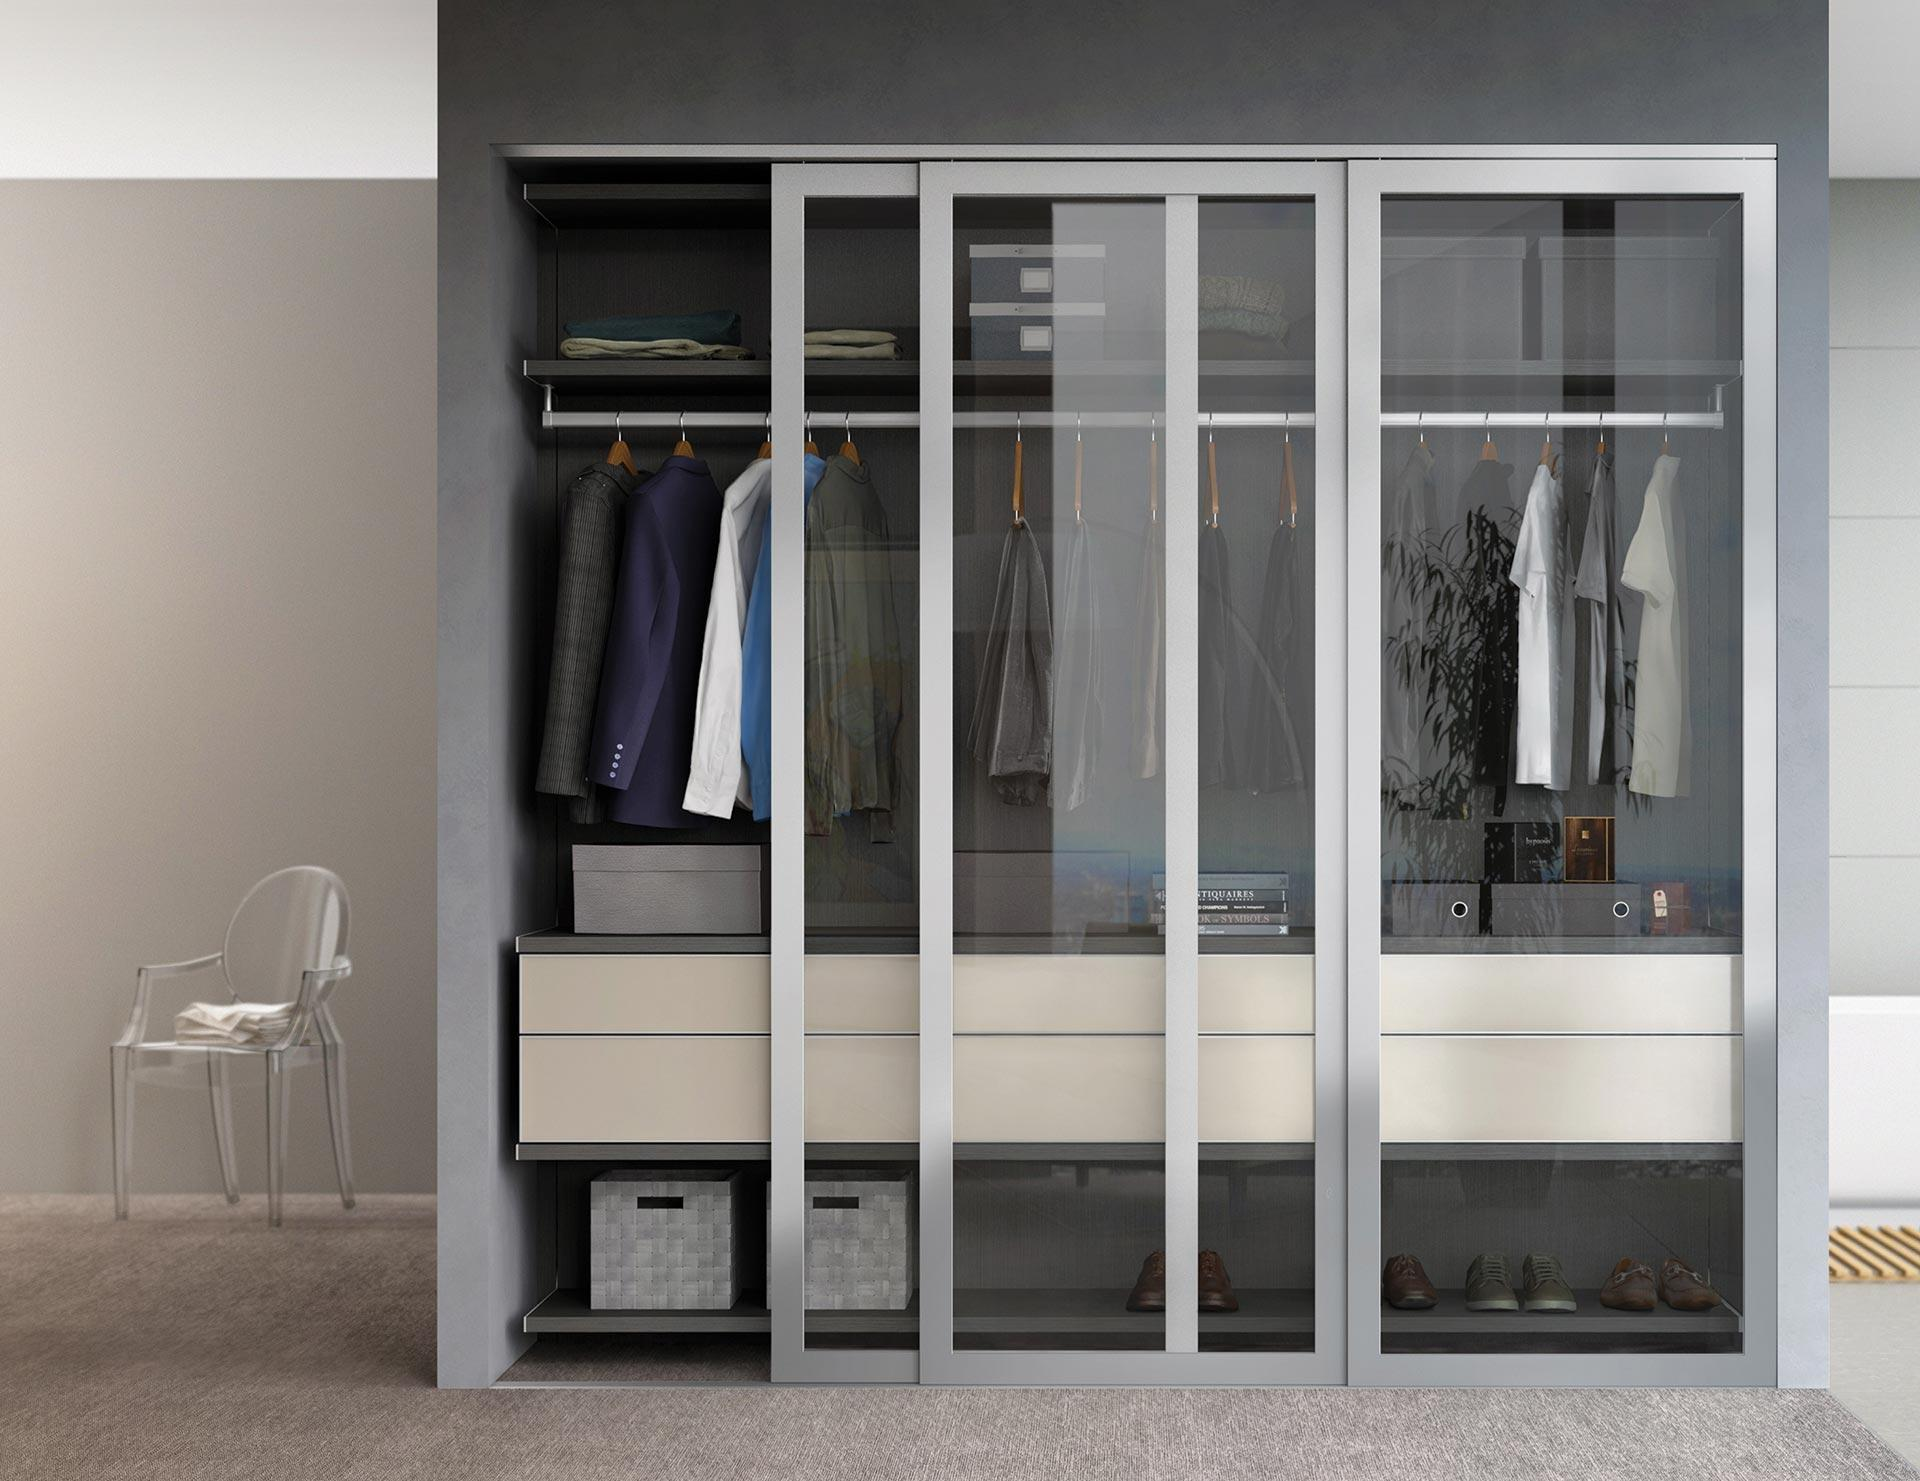 Reach In Closet Organization Ideas Part - 30: California Closets - Reach-In Custom Closet With Sliding Doors